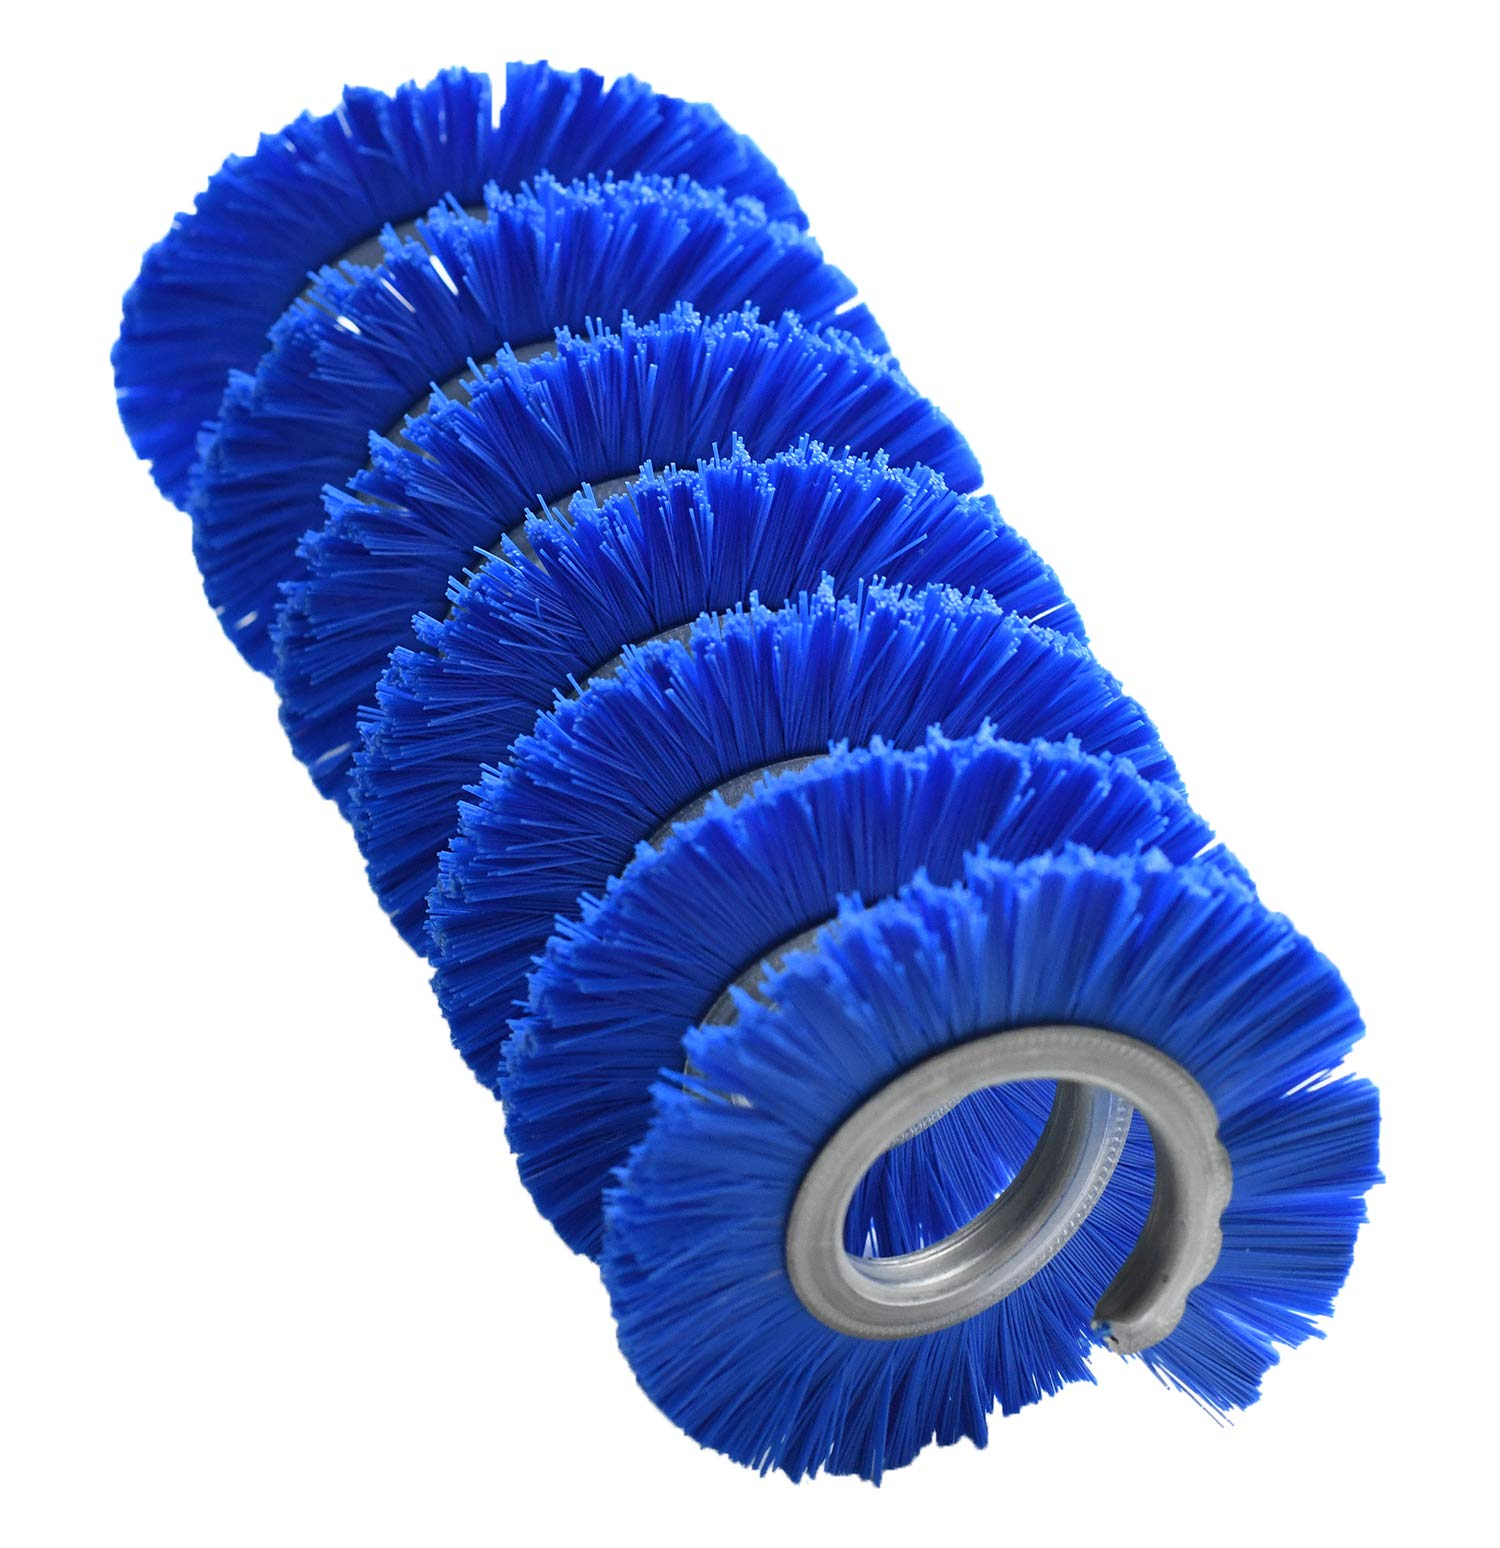 Pool Boy Brush Original Pool Cleaner Attachment - Replacement for Polaris and Pentair Pool Sweeper Systems with Standard Tail Scrubbers, 1 Piece by Pool Boy Brush